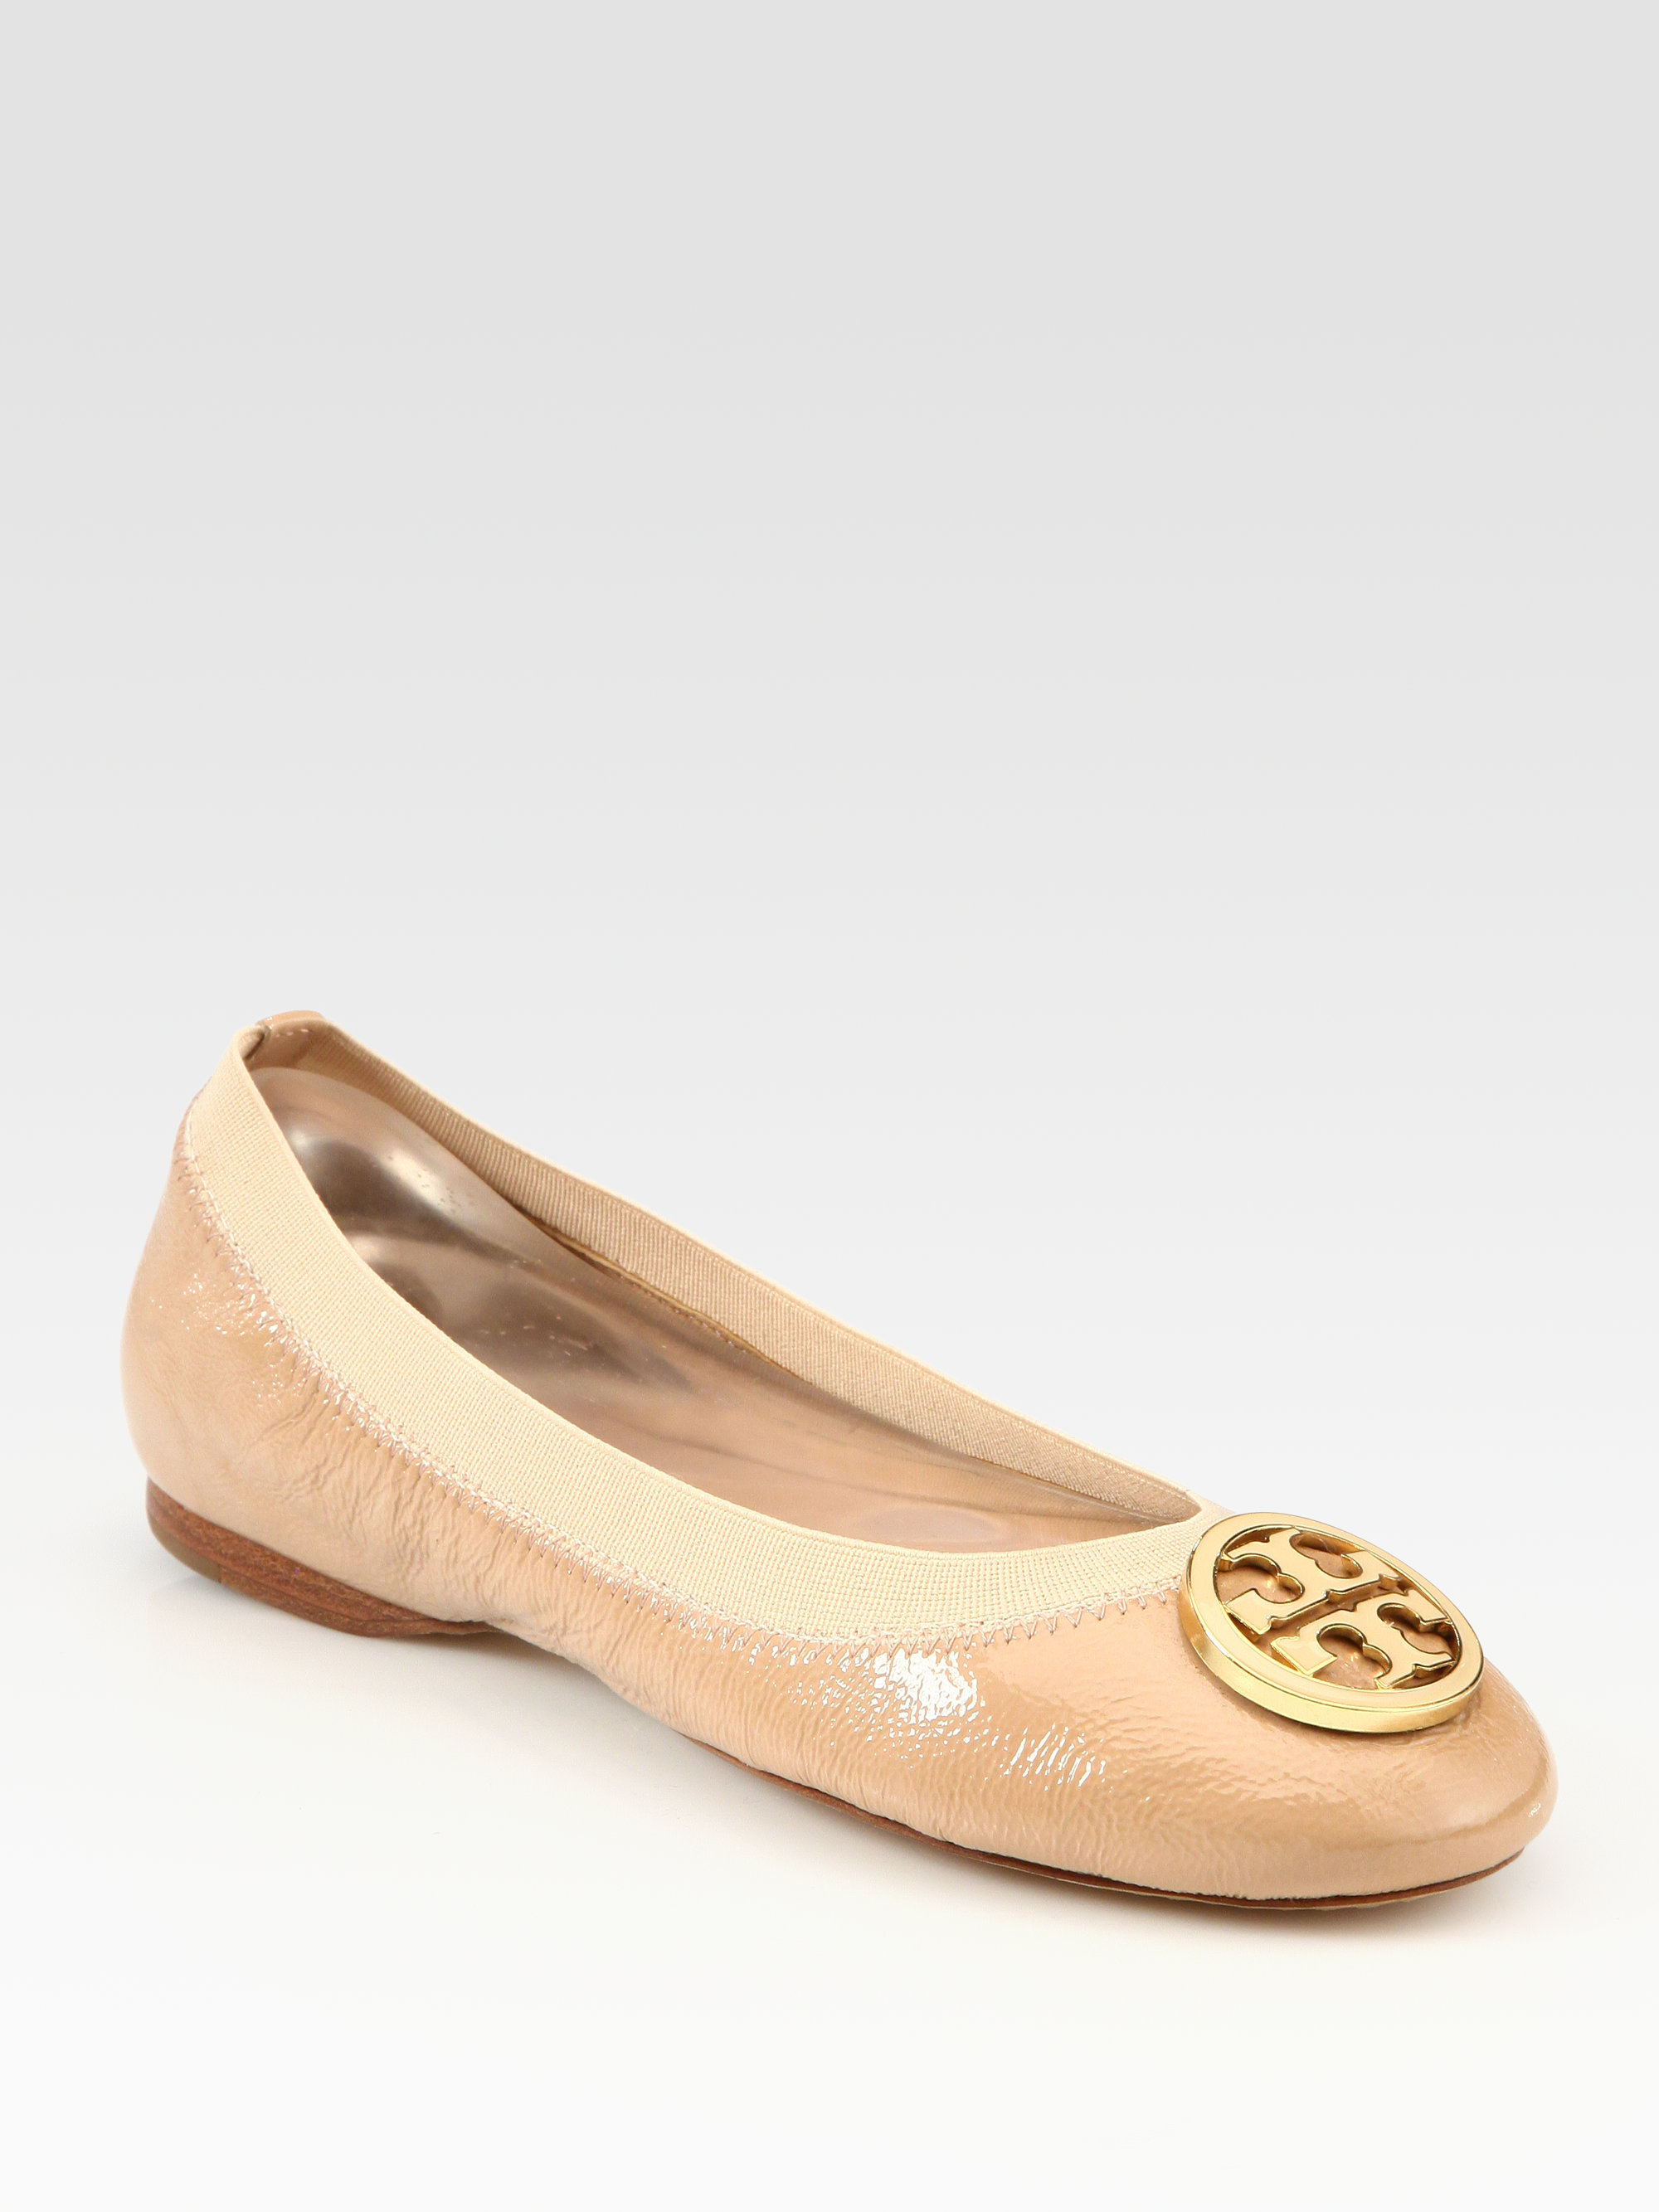 ebbe2778cb404 ... italy lyst tory burch caroline patent leather logo ballet flats in  natural 8145f 42b0d